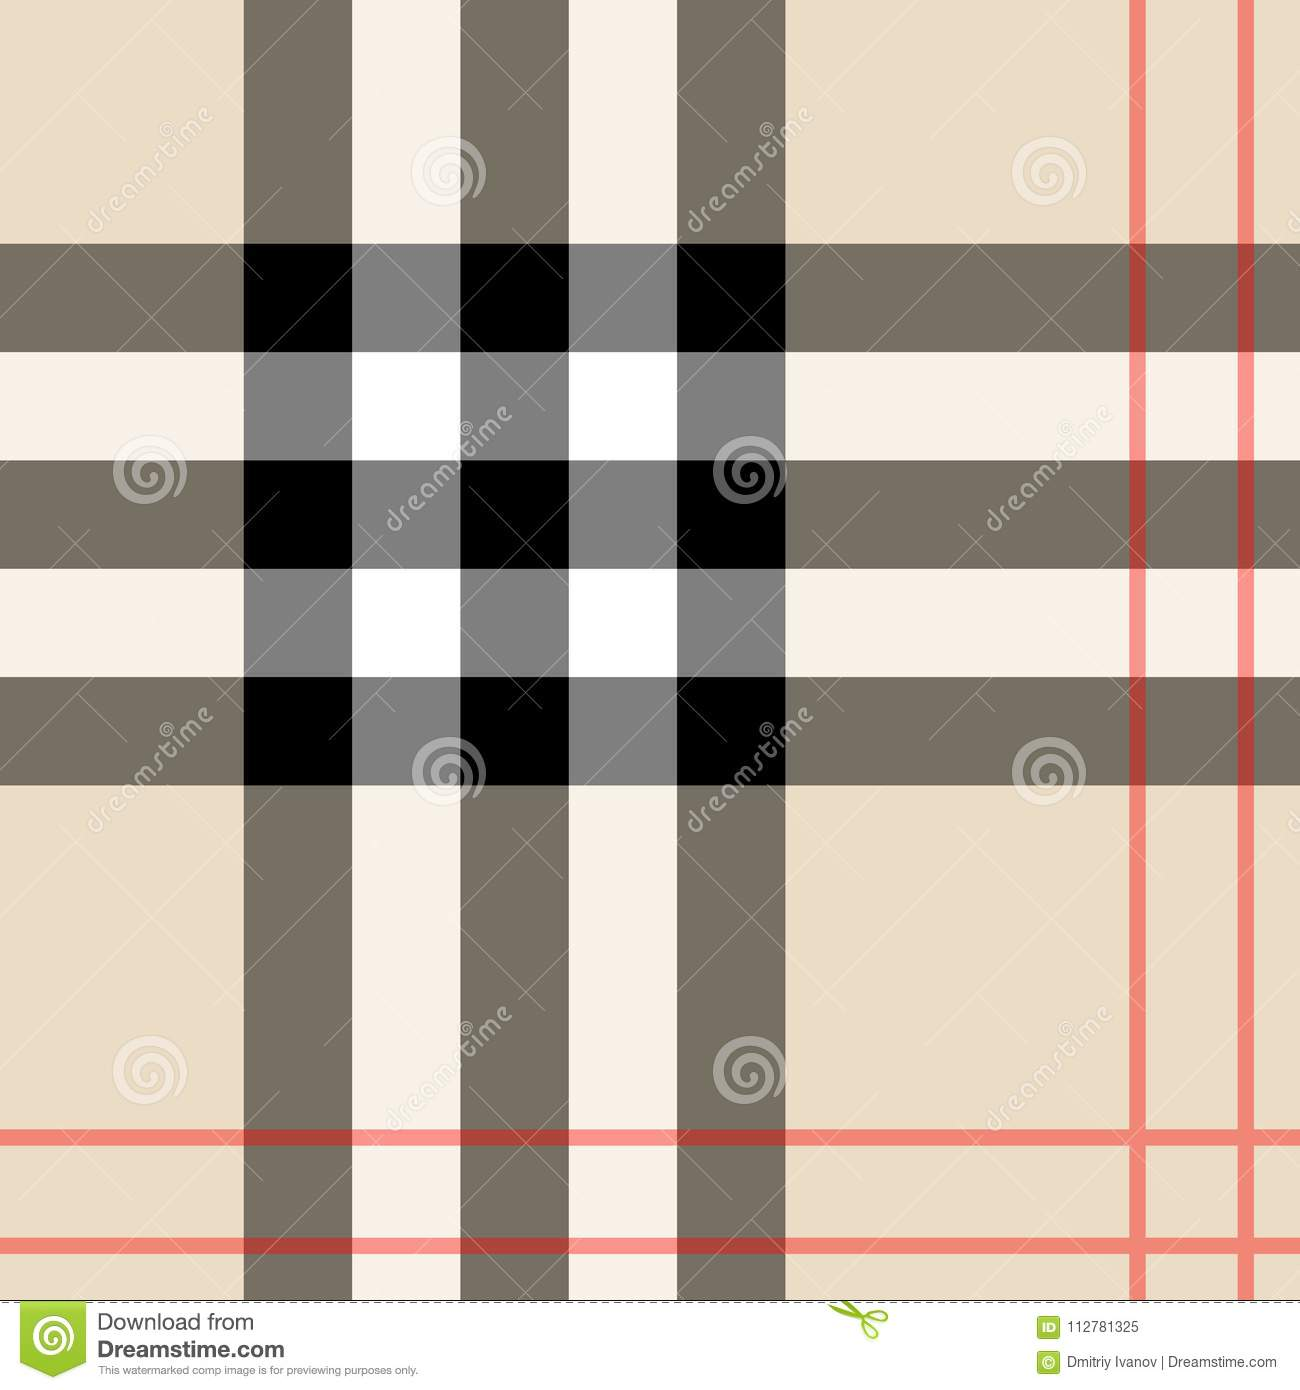 Burberry Pattern Stock Illustrations – 34 Burberry Pattern Stock  Illustrations, Vectors   Clipart - Dreamstime fabcaec497